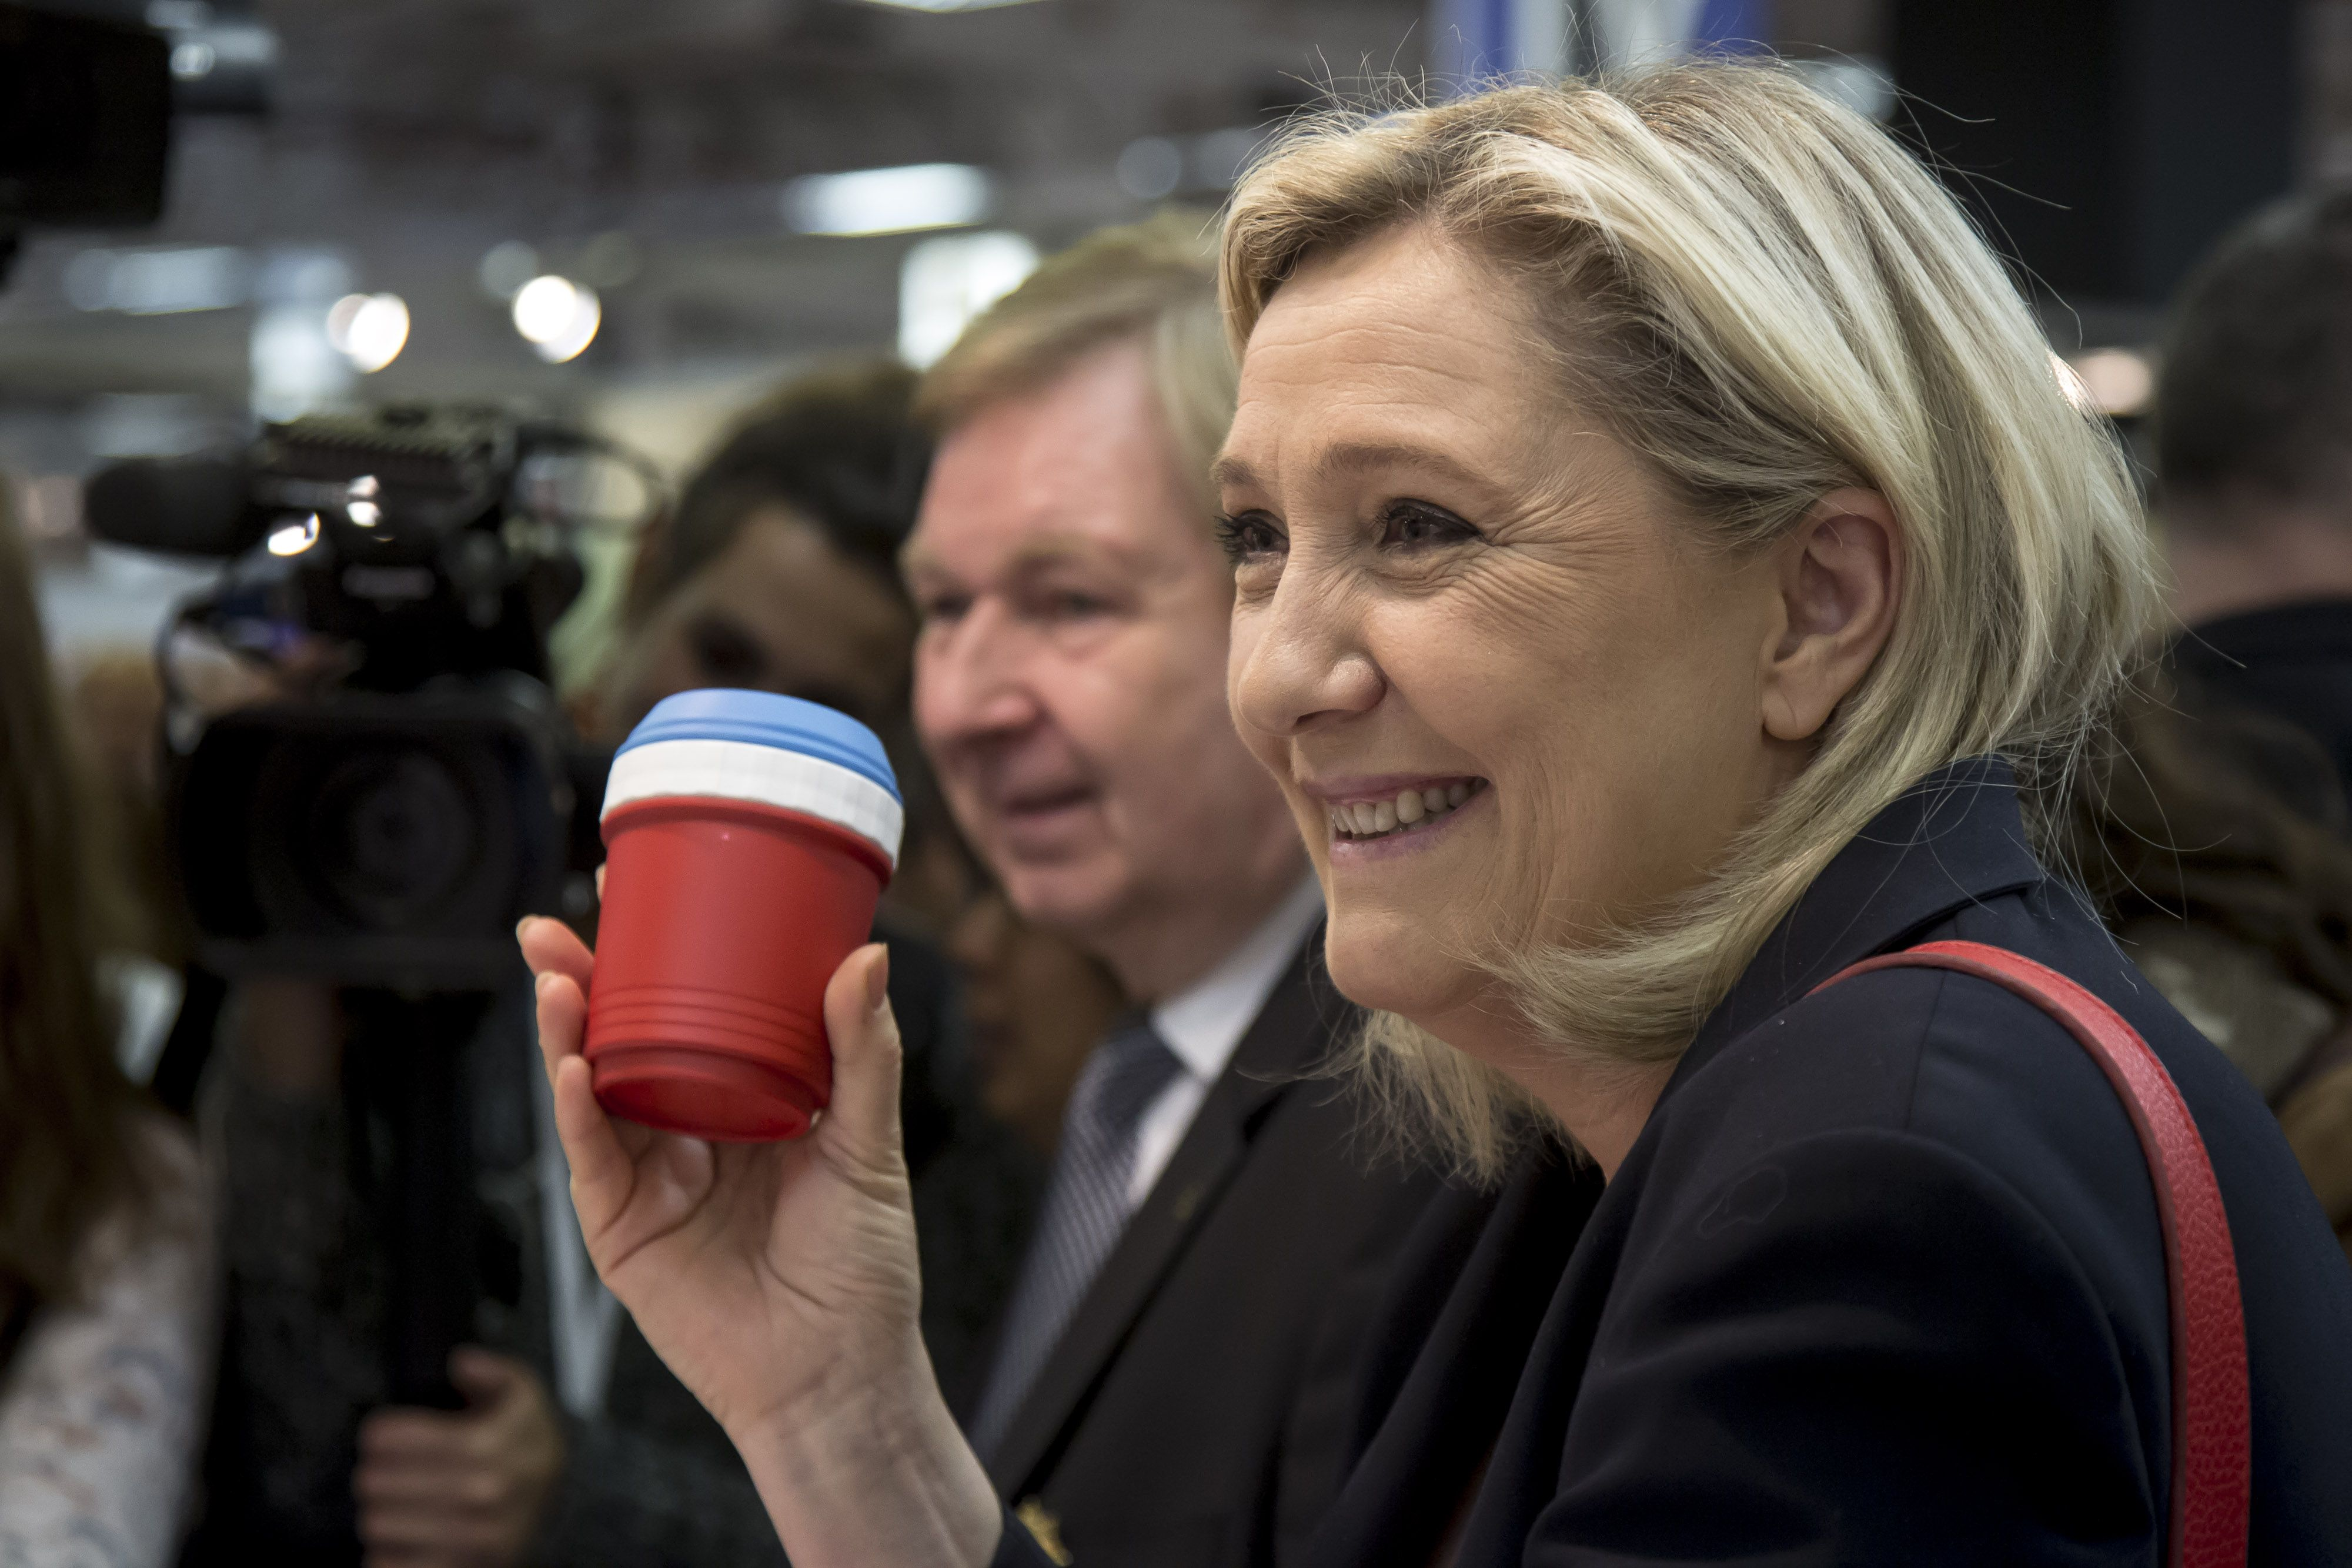 Le Pen steps down from Front leadership to focus on presidential bid